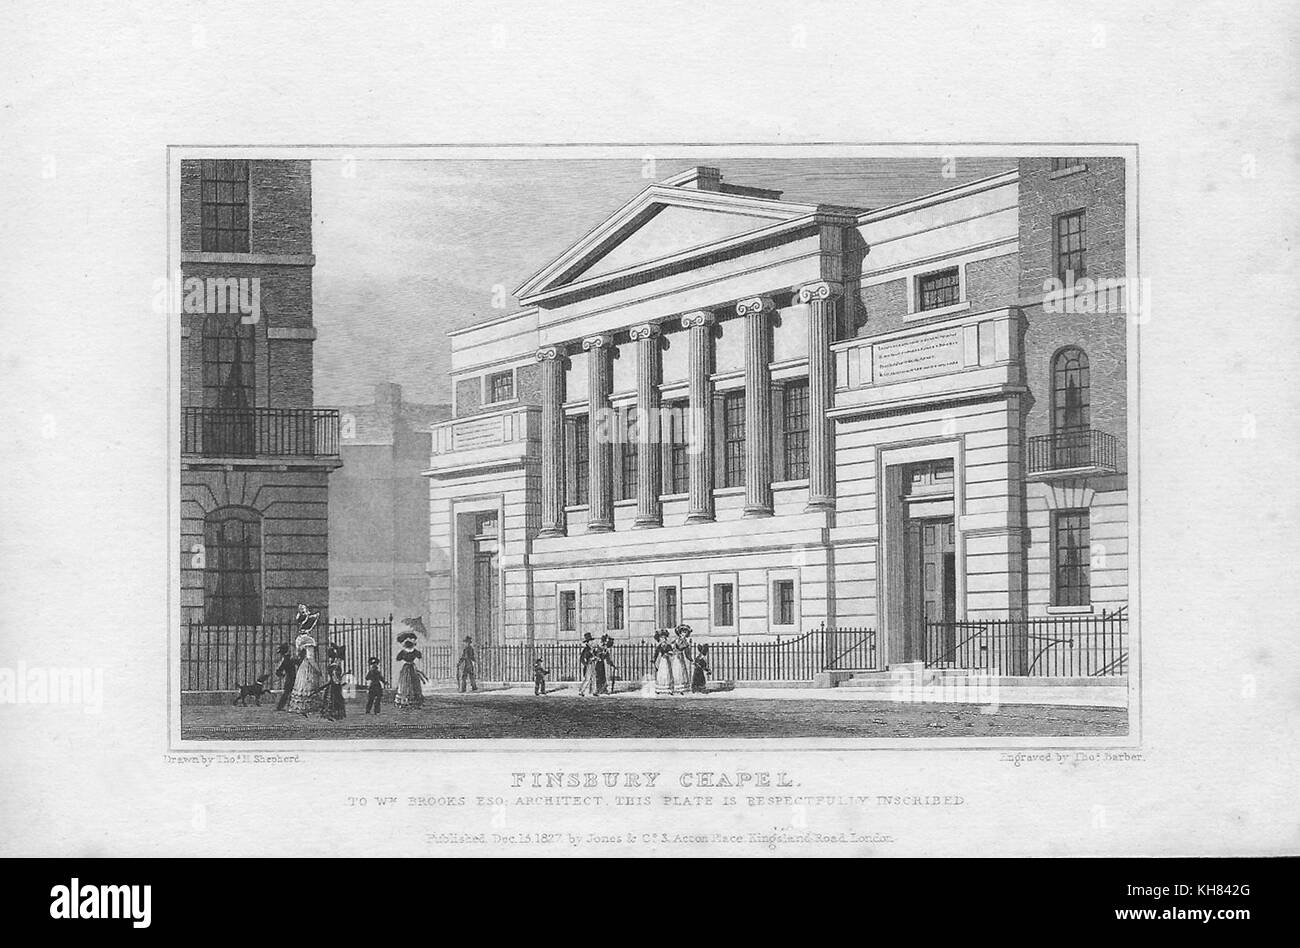 Finsbury chapel, engraving from 'Metropolitan Improvements, or London in the Nineteenth Century' London, - Stock Image